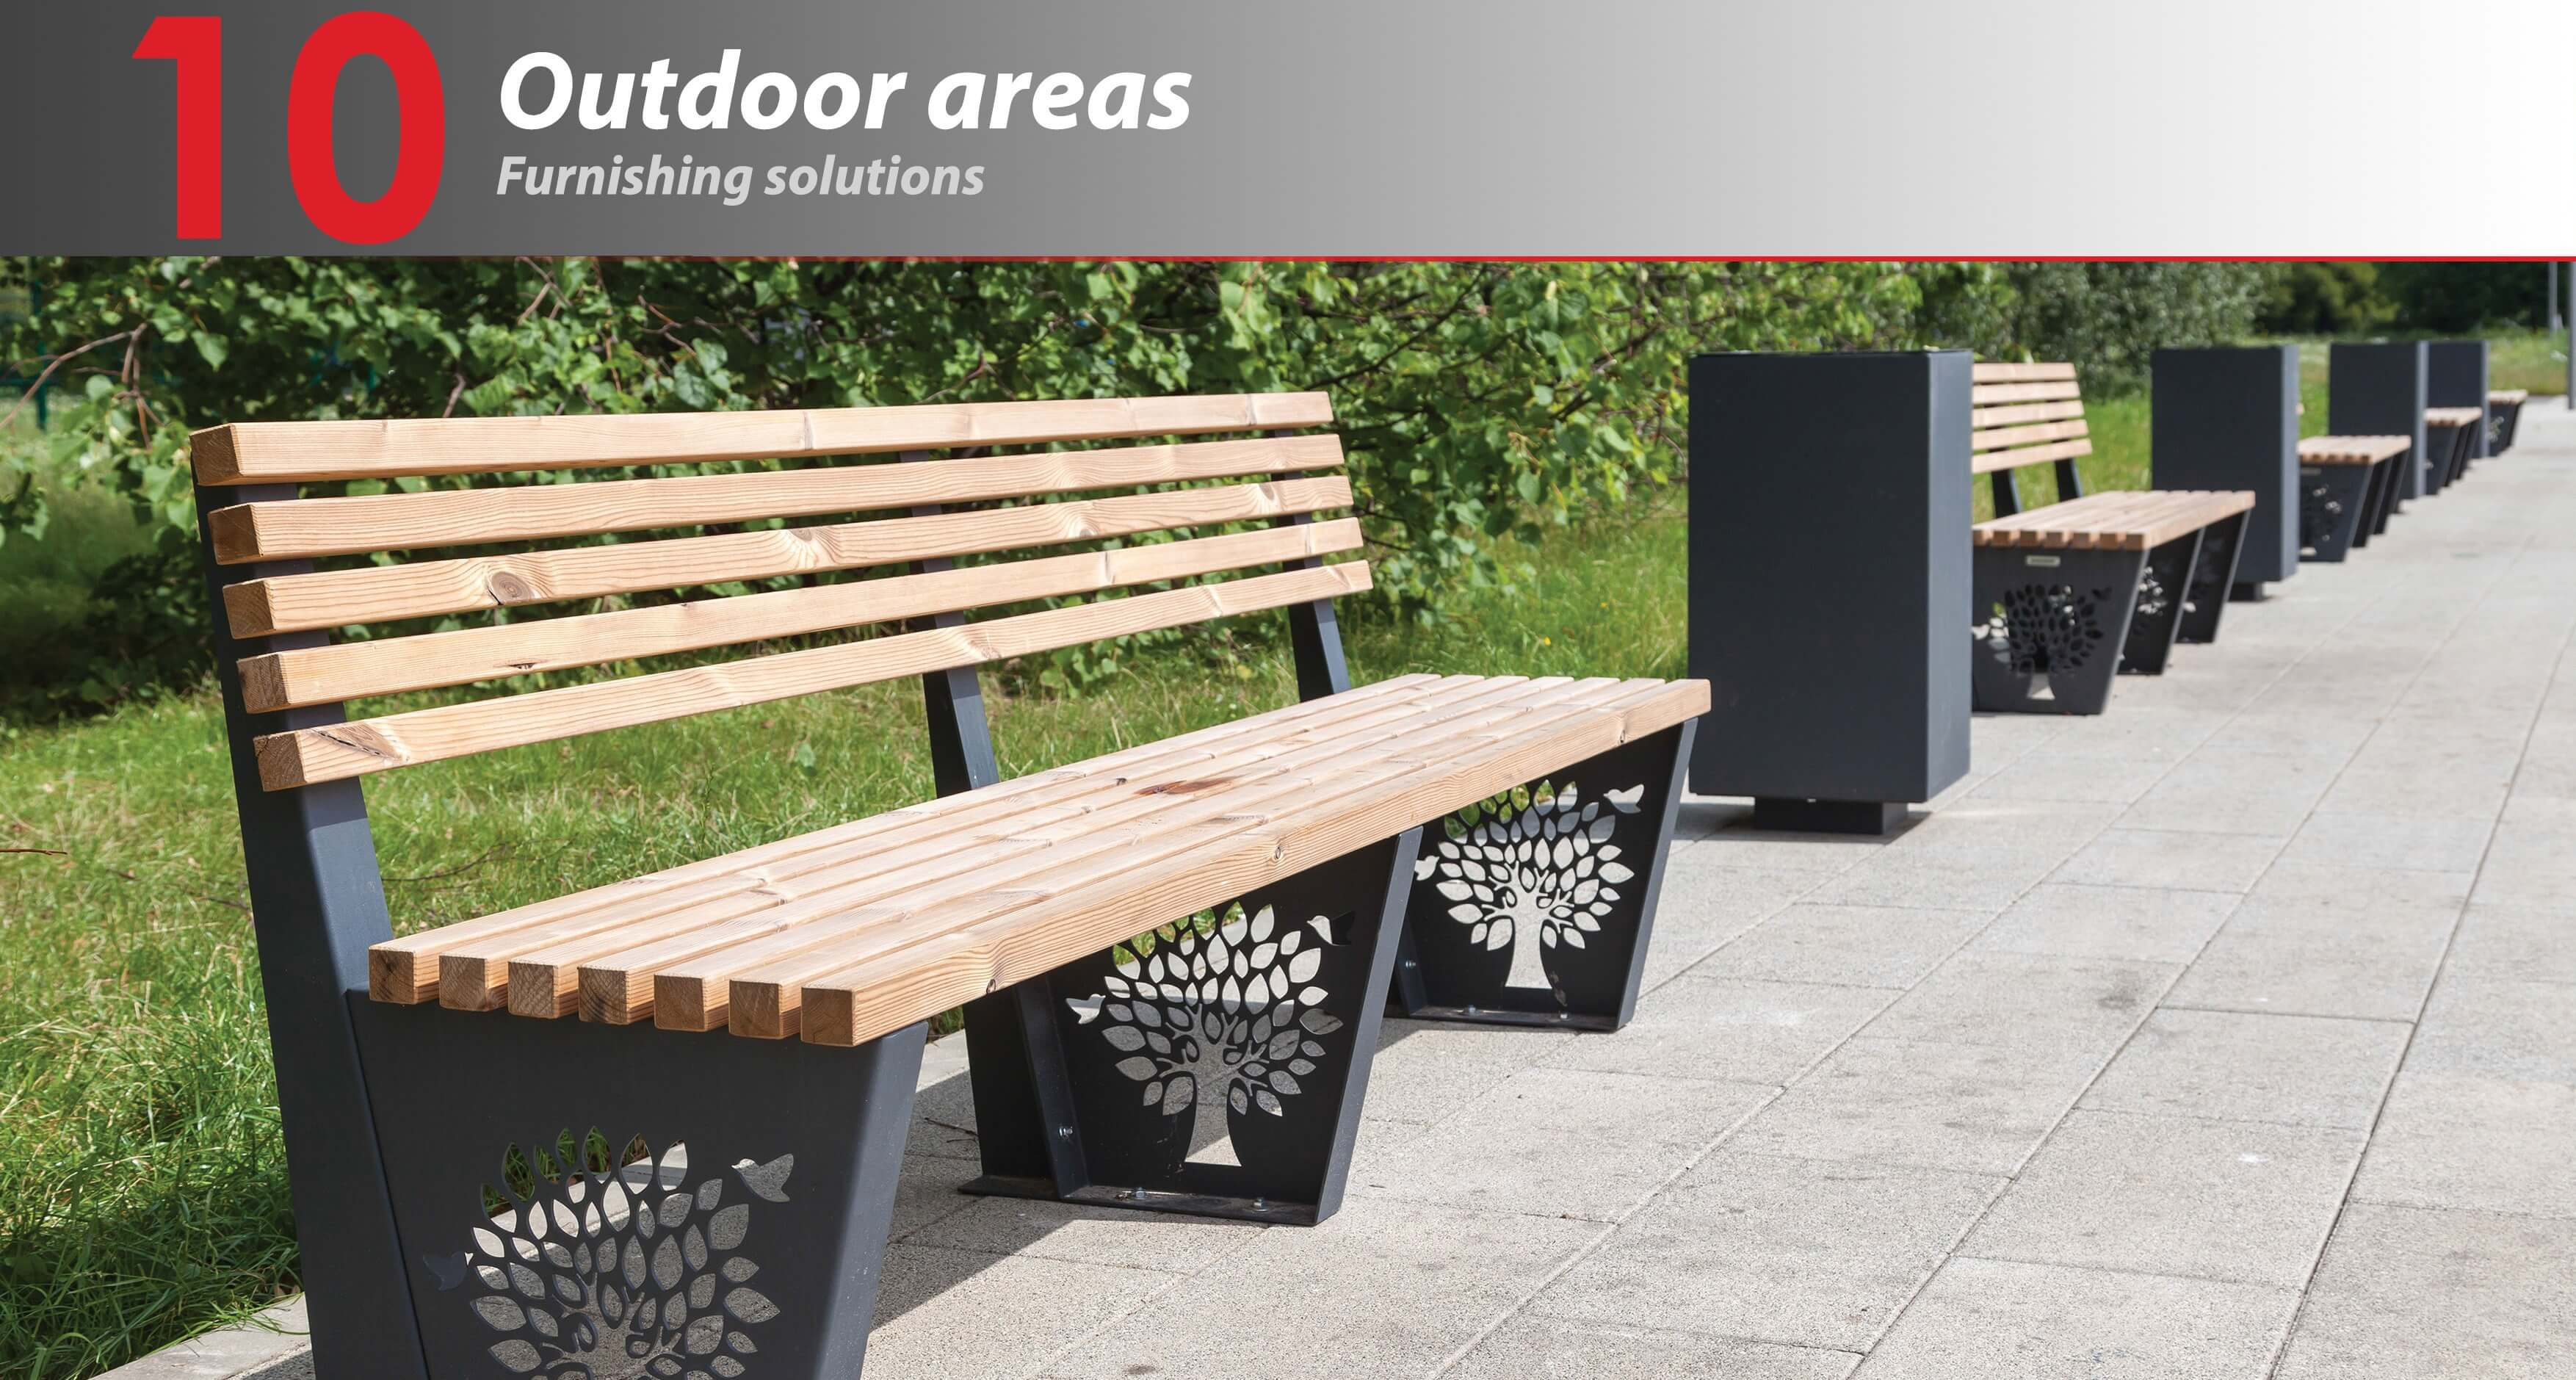 Outdoors Areas